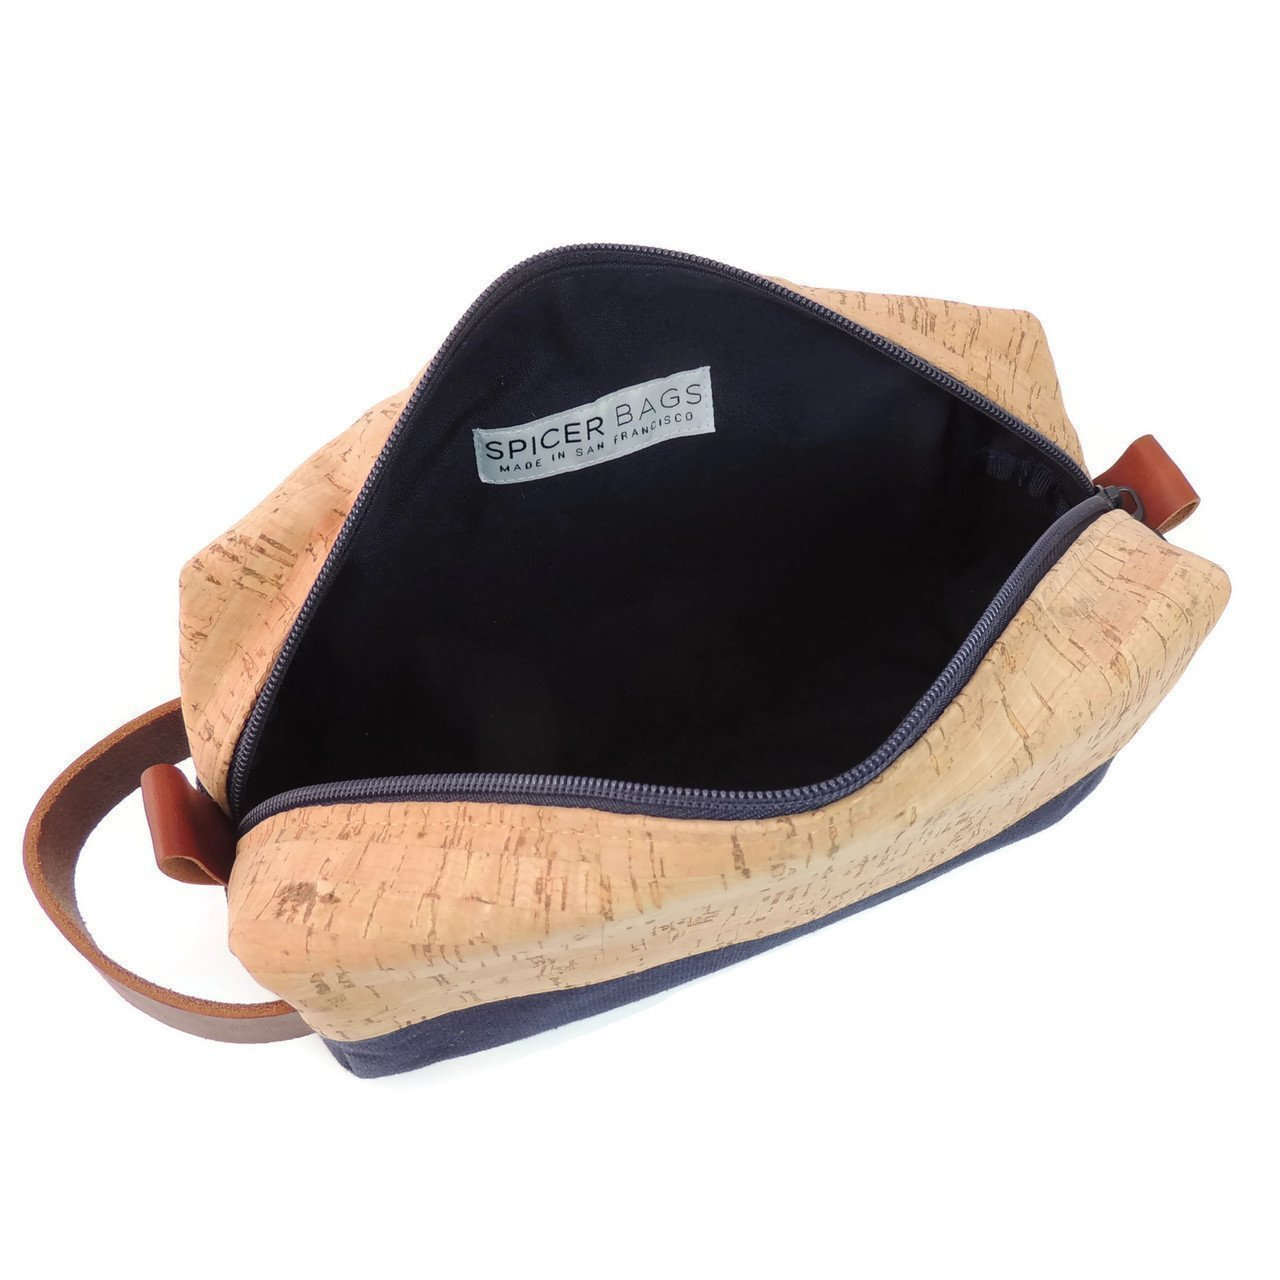 Toiletry Dopp Kit in Real Cork Fabric and Navy Canvas by Spicer Bags